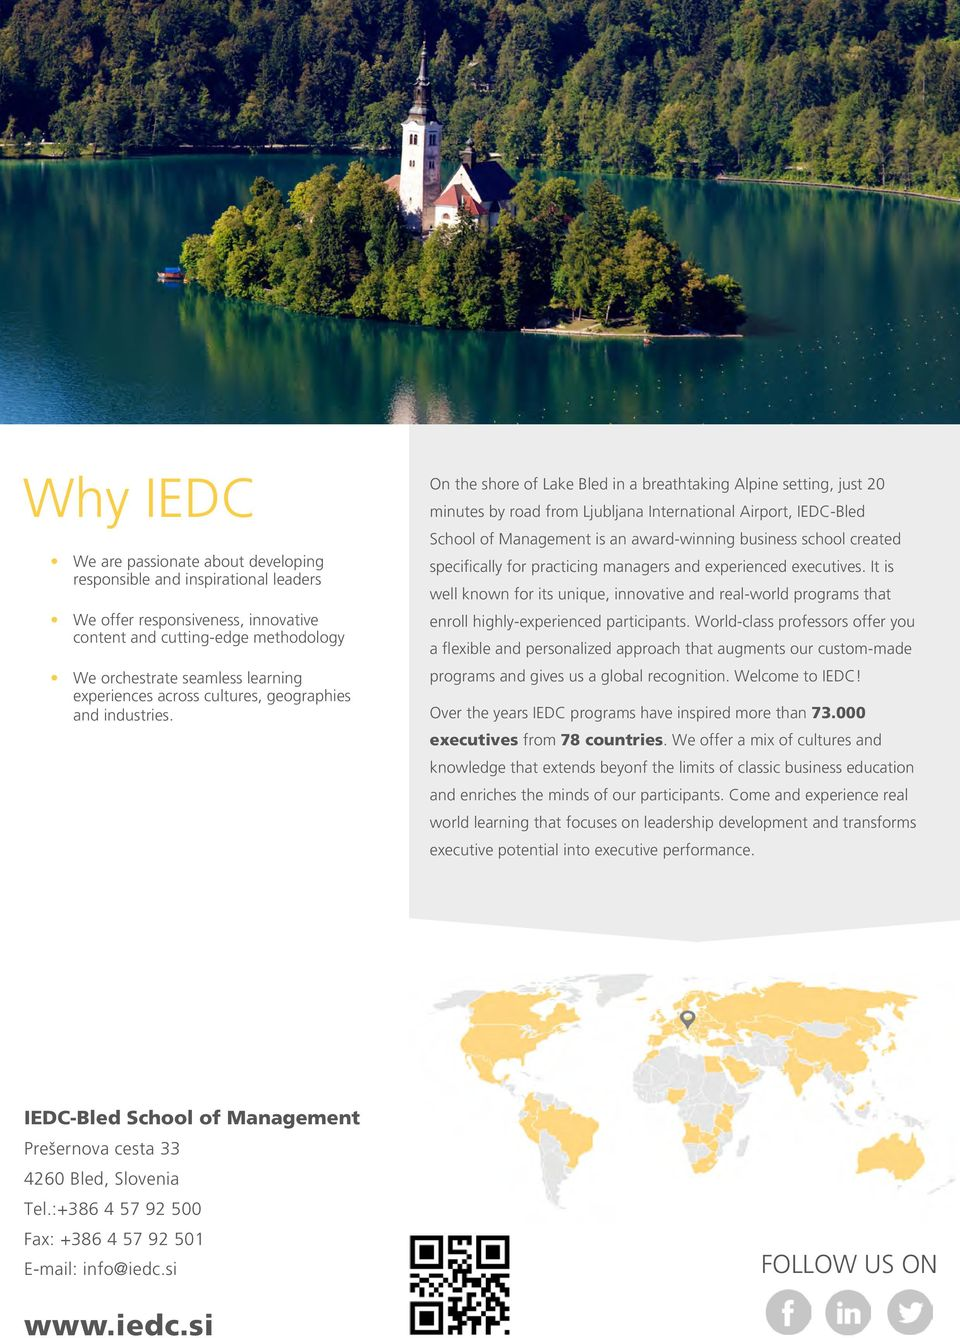 On the shore of Lake Bled in a breathtaking Alpine setting, just 20 minutes by road from Ljubljana International Airport, IEDC-Bled School of Management is an award-winning business school created